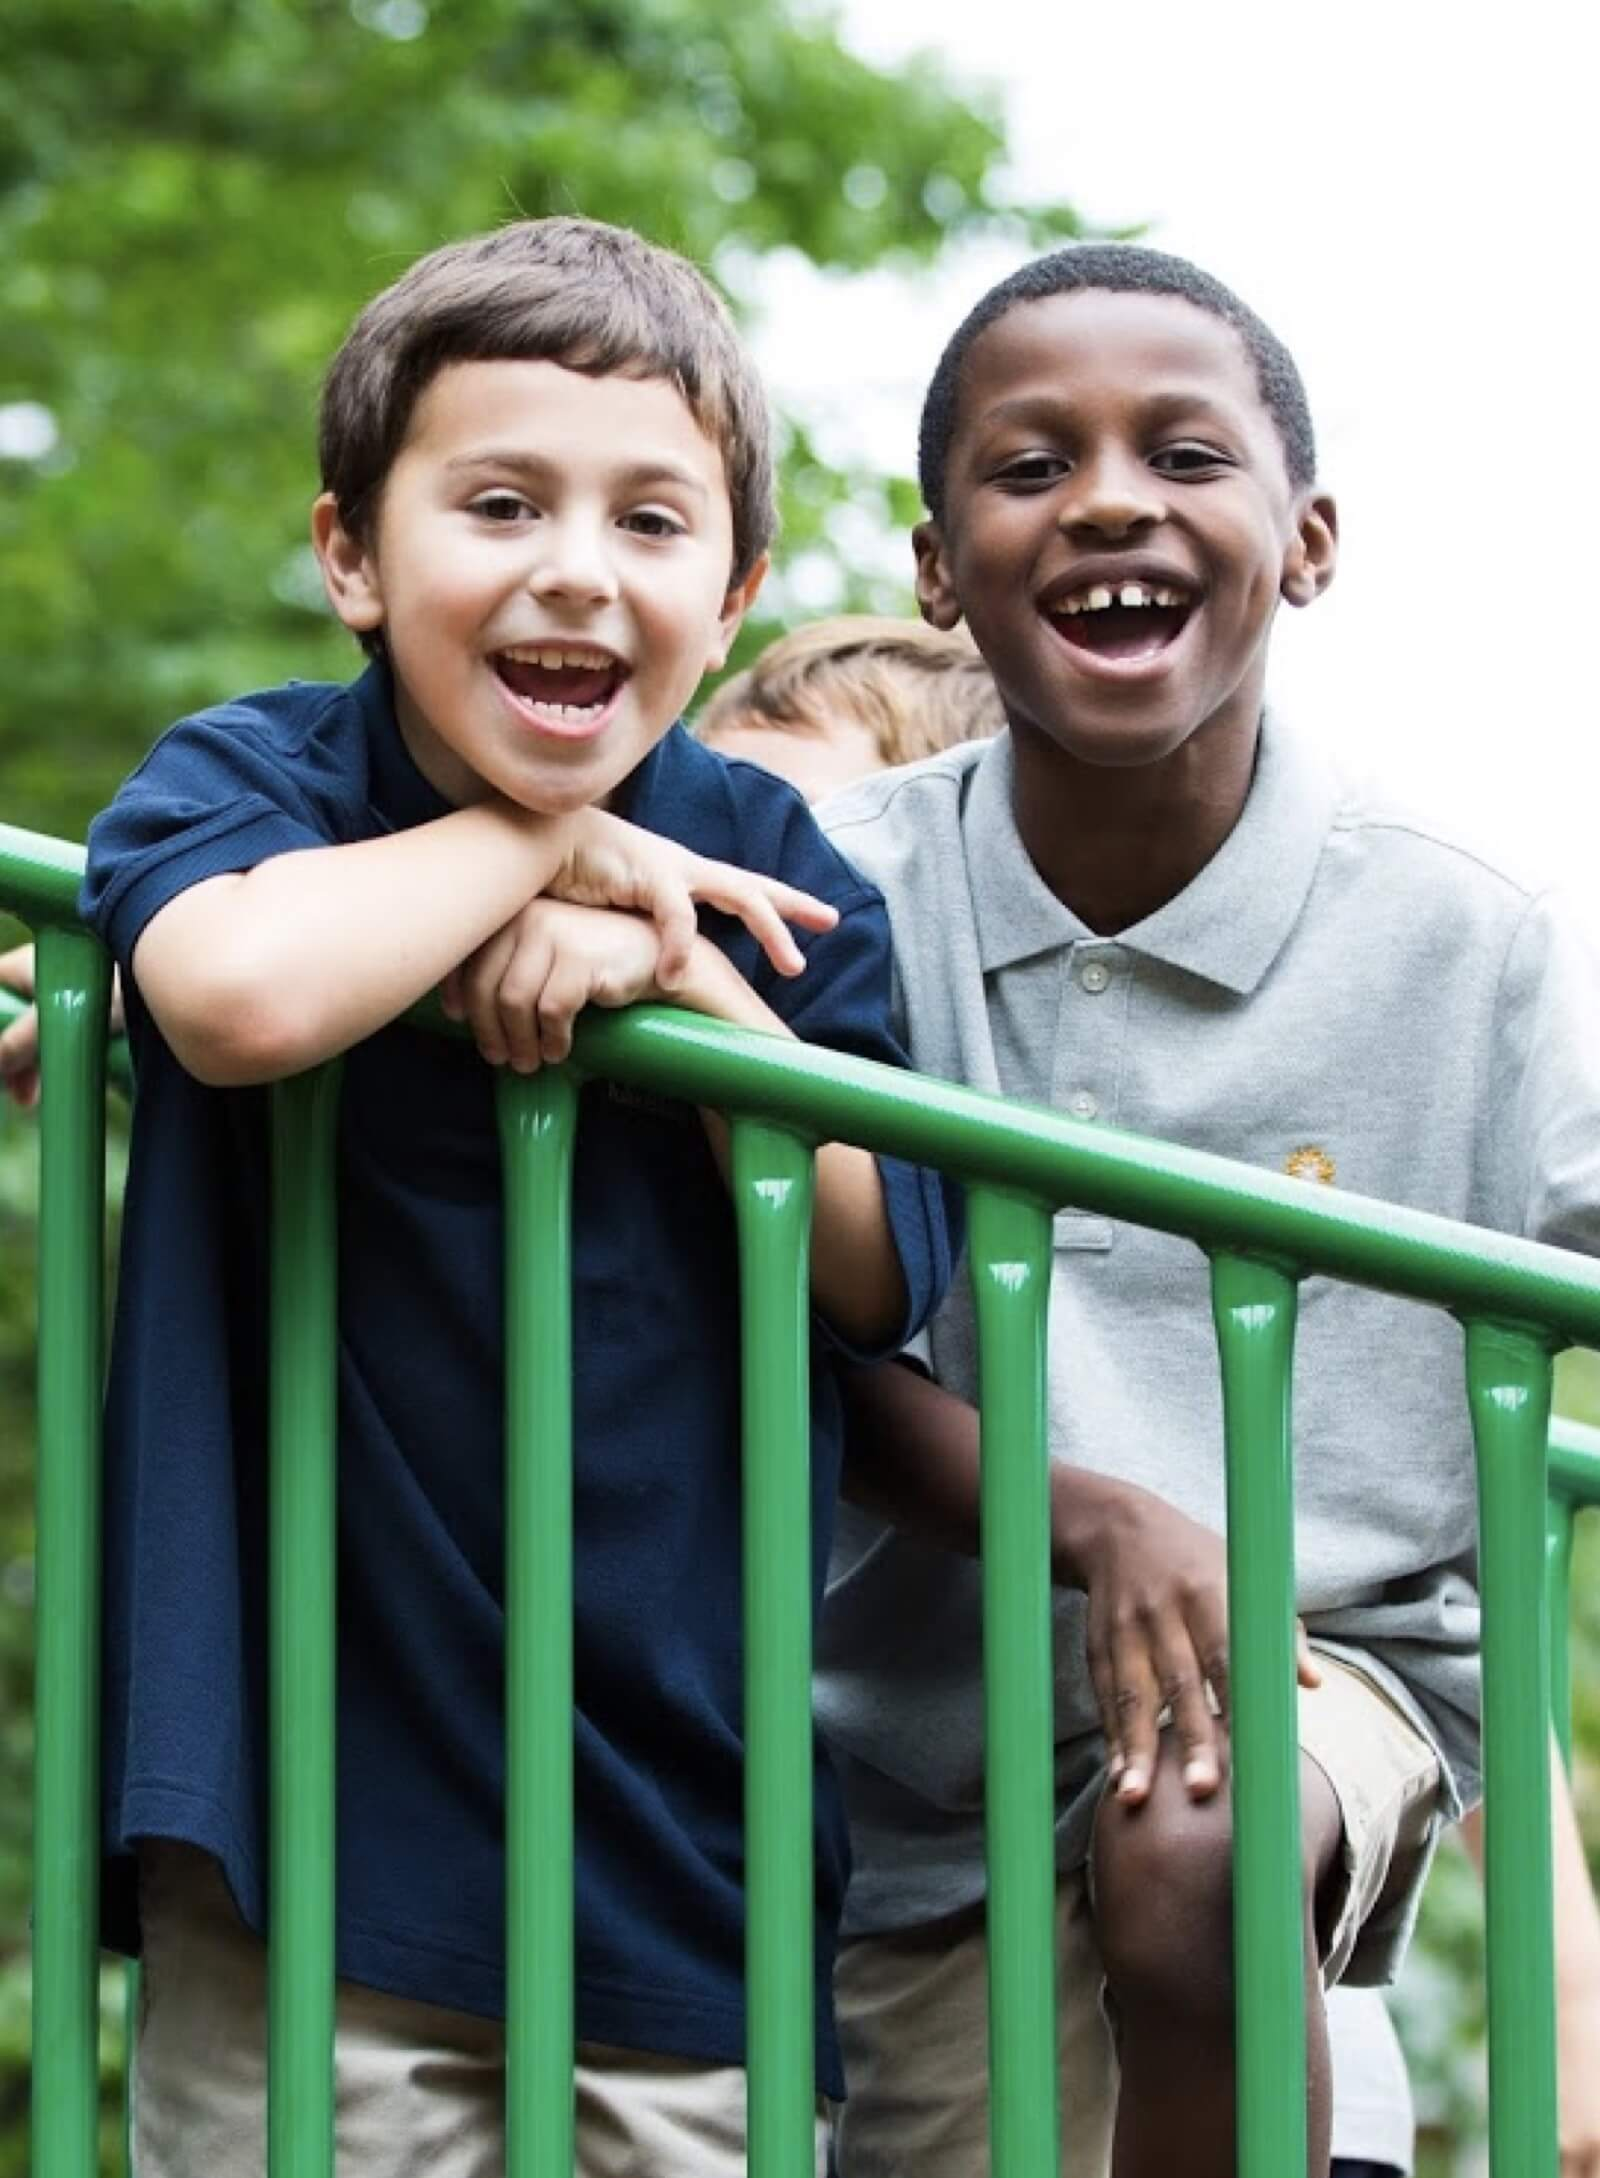 boys-smiling-on-playground